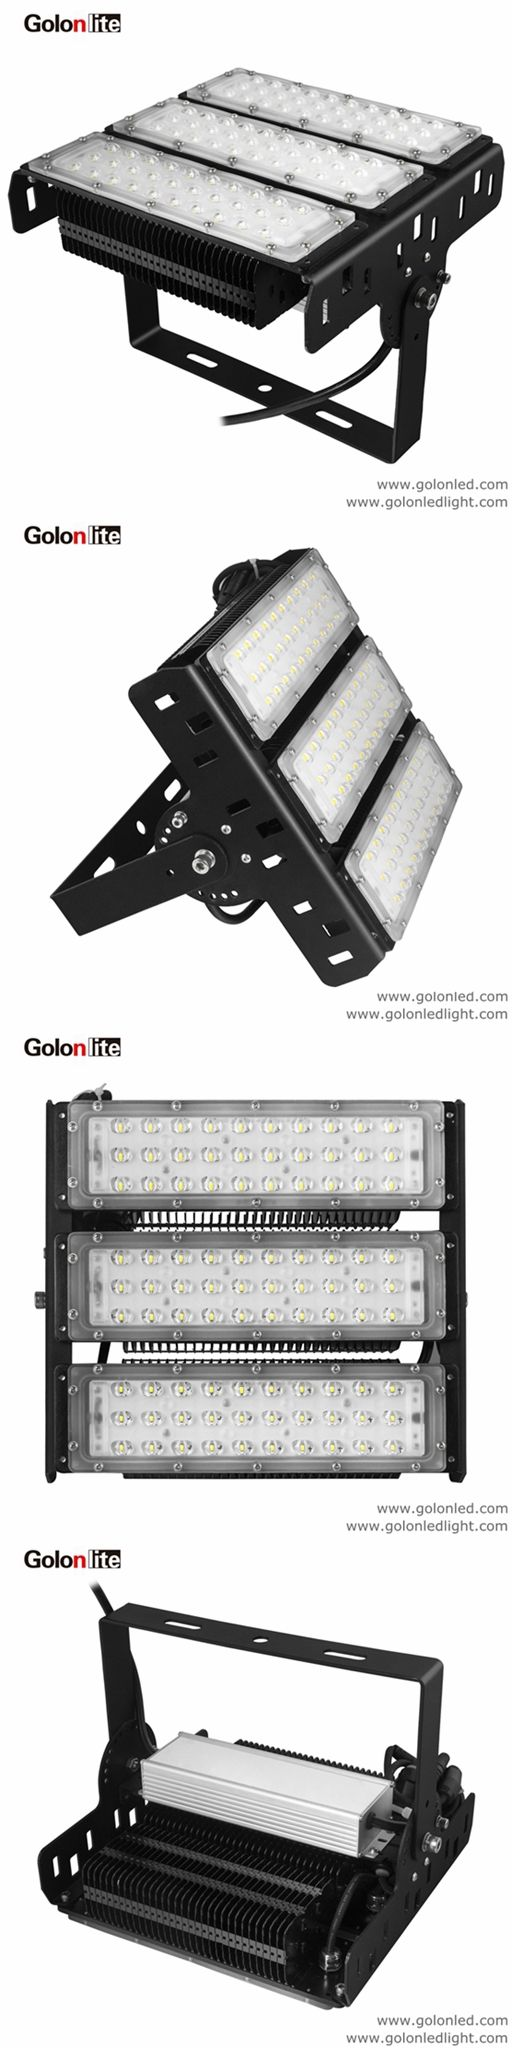 Top Grade 50w 100w 150w 200w 300w 400w Led Tunnel Light With Meanwell Driver Email Sales01 Golonledlight Com Whatsapp 86 Flood Lights Led Flood Canopy Lights